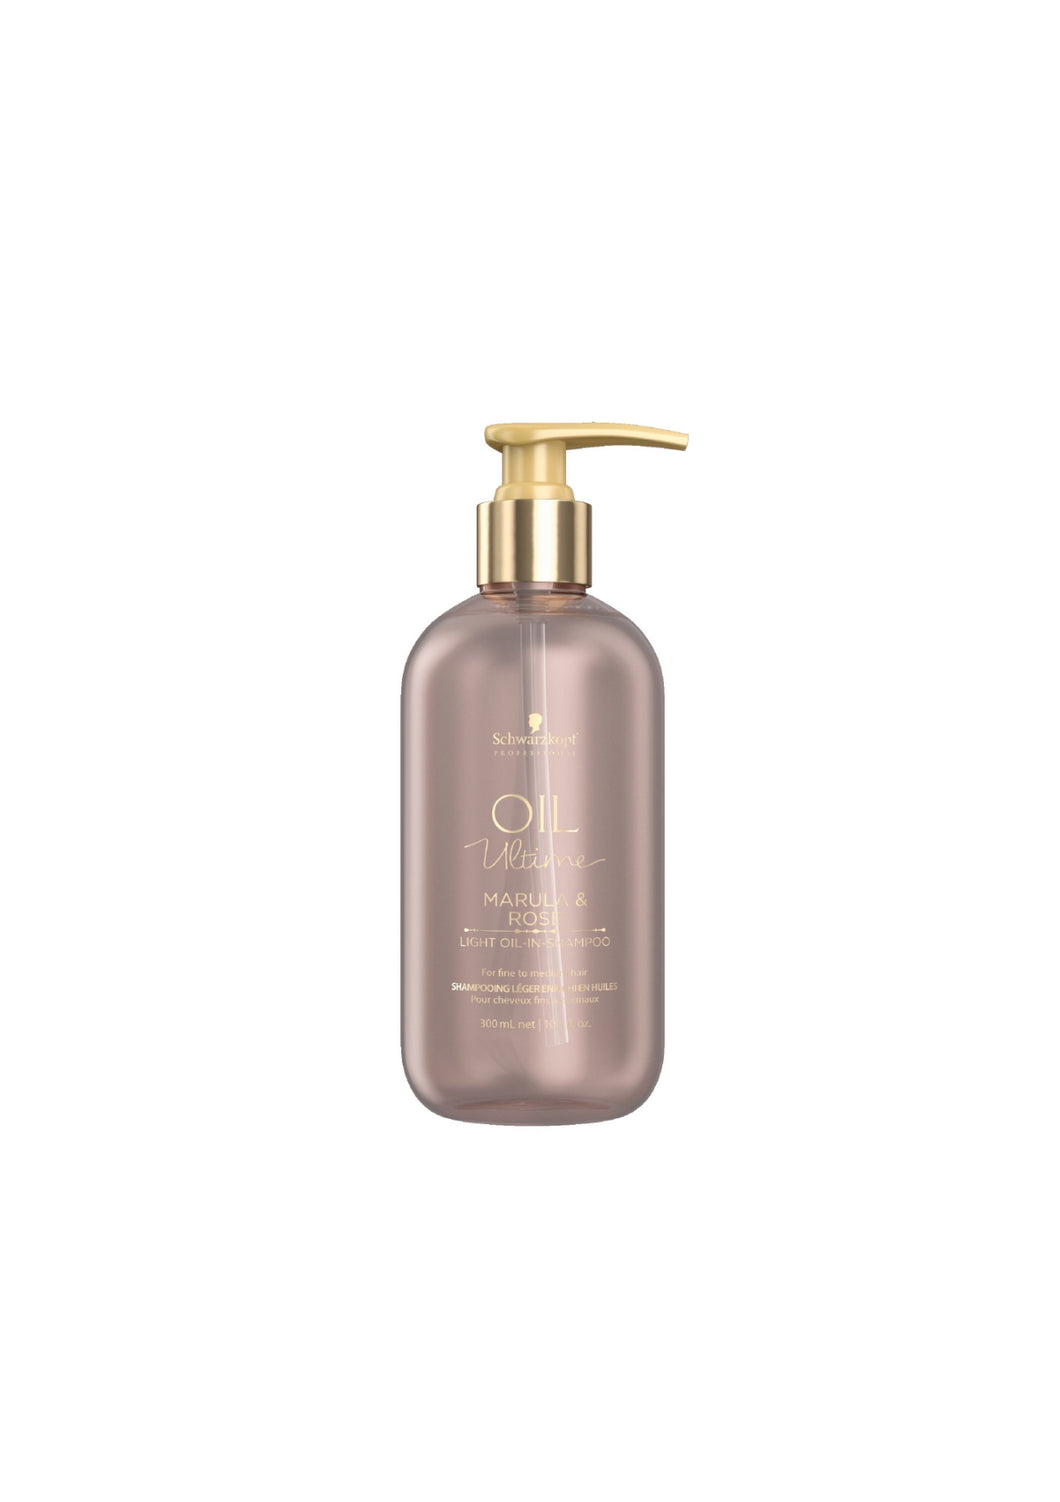 Oil Ultime Marula and Rose Light Oil-In-Shampoo